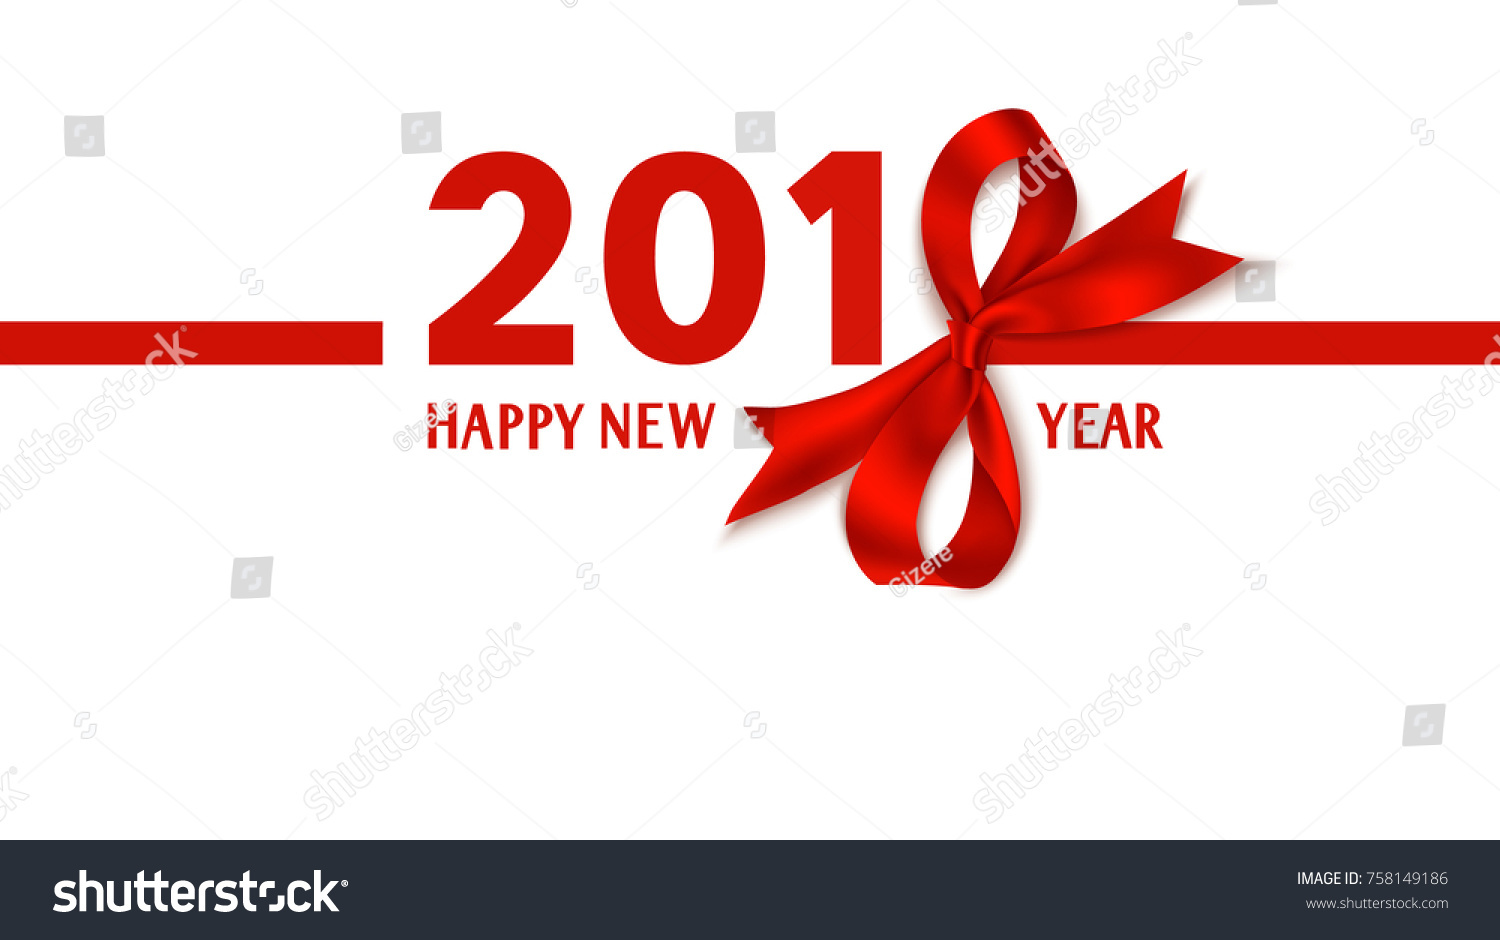 happy new year 2018 template design vector background with red bow and ribbon 2018